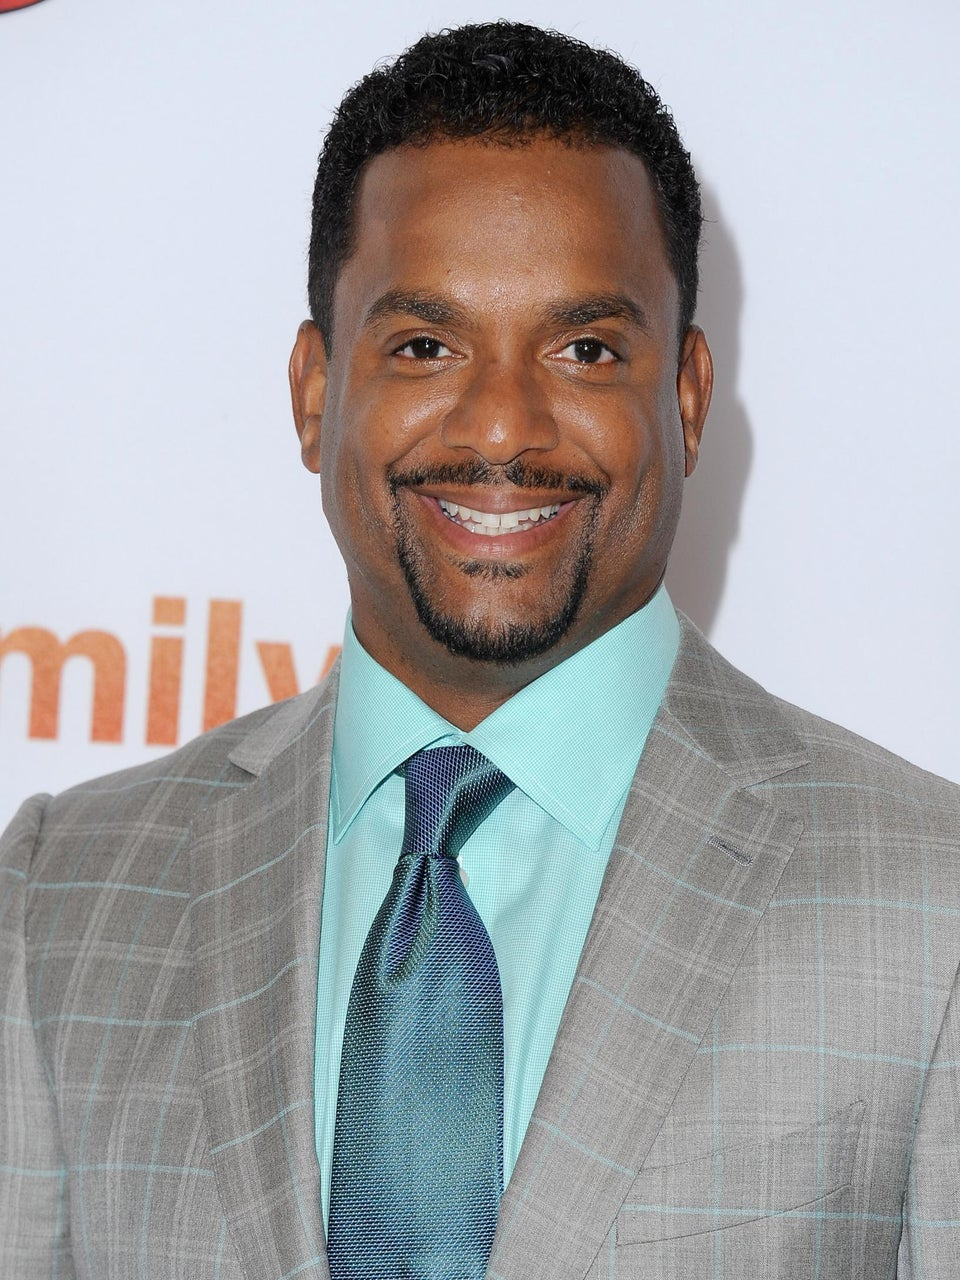 Alfonso Ribiero To Host Tonight's Episode Of 'Dancing With the Stars'